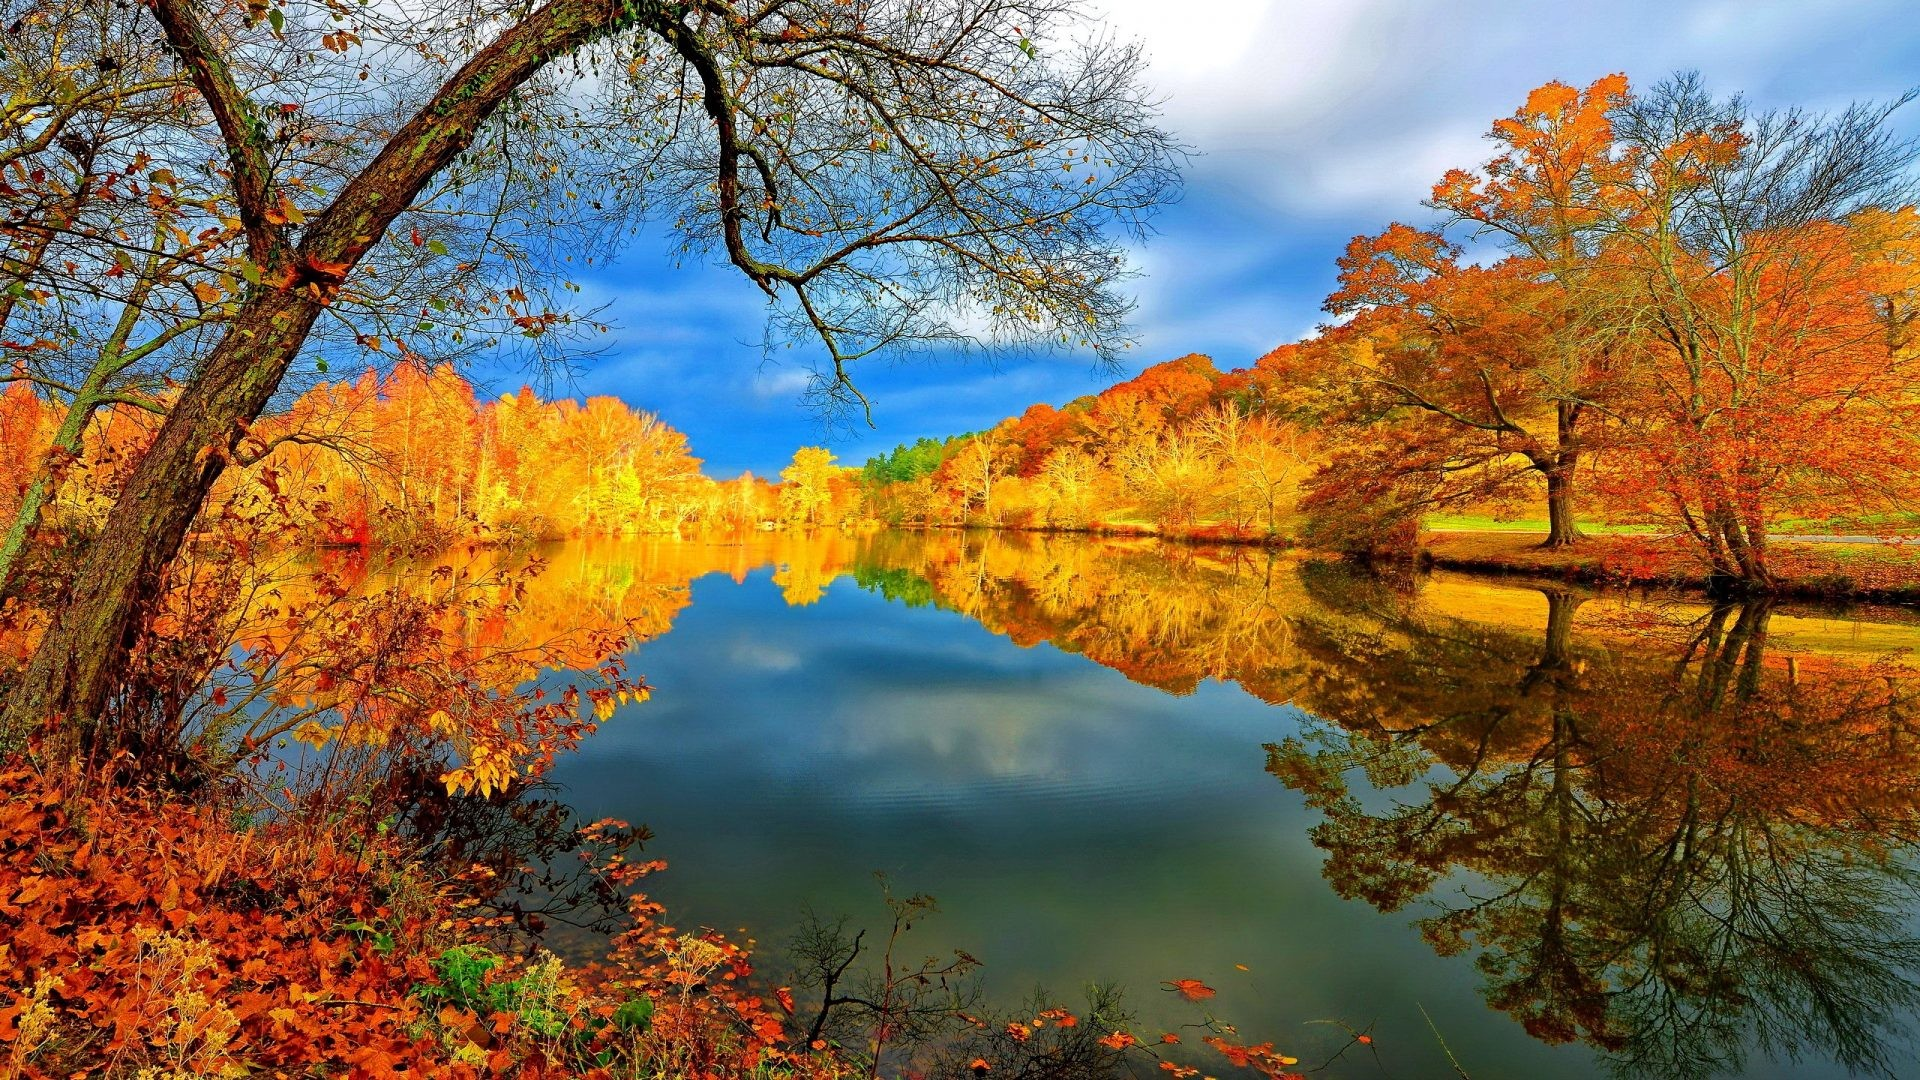 Falling Tag – Lake Fall Grass Colors Golden River Falling Branches Lvoely  Water Lovely Calmness Serenity